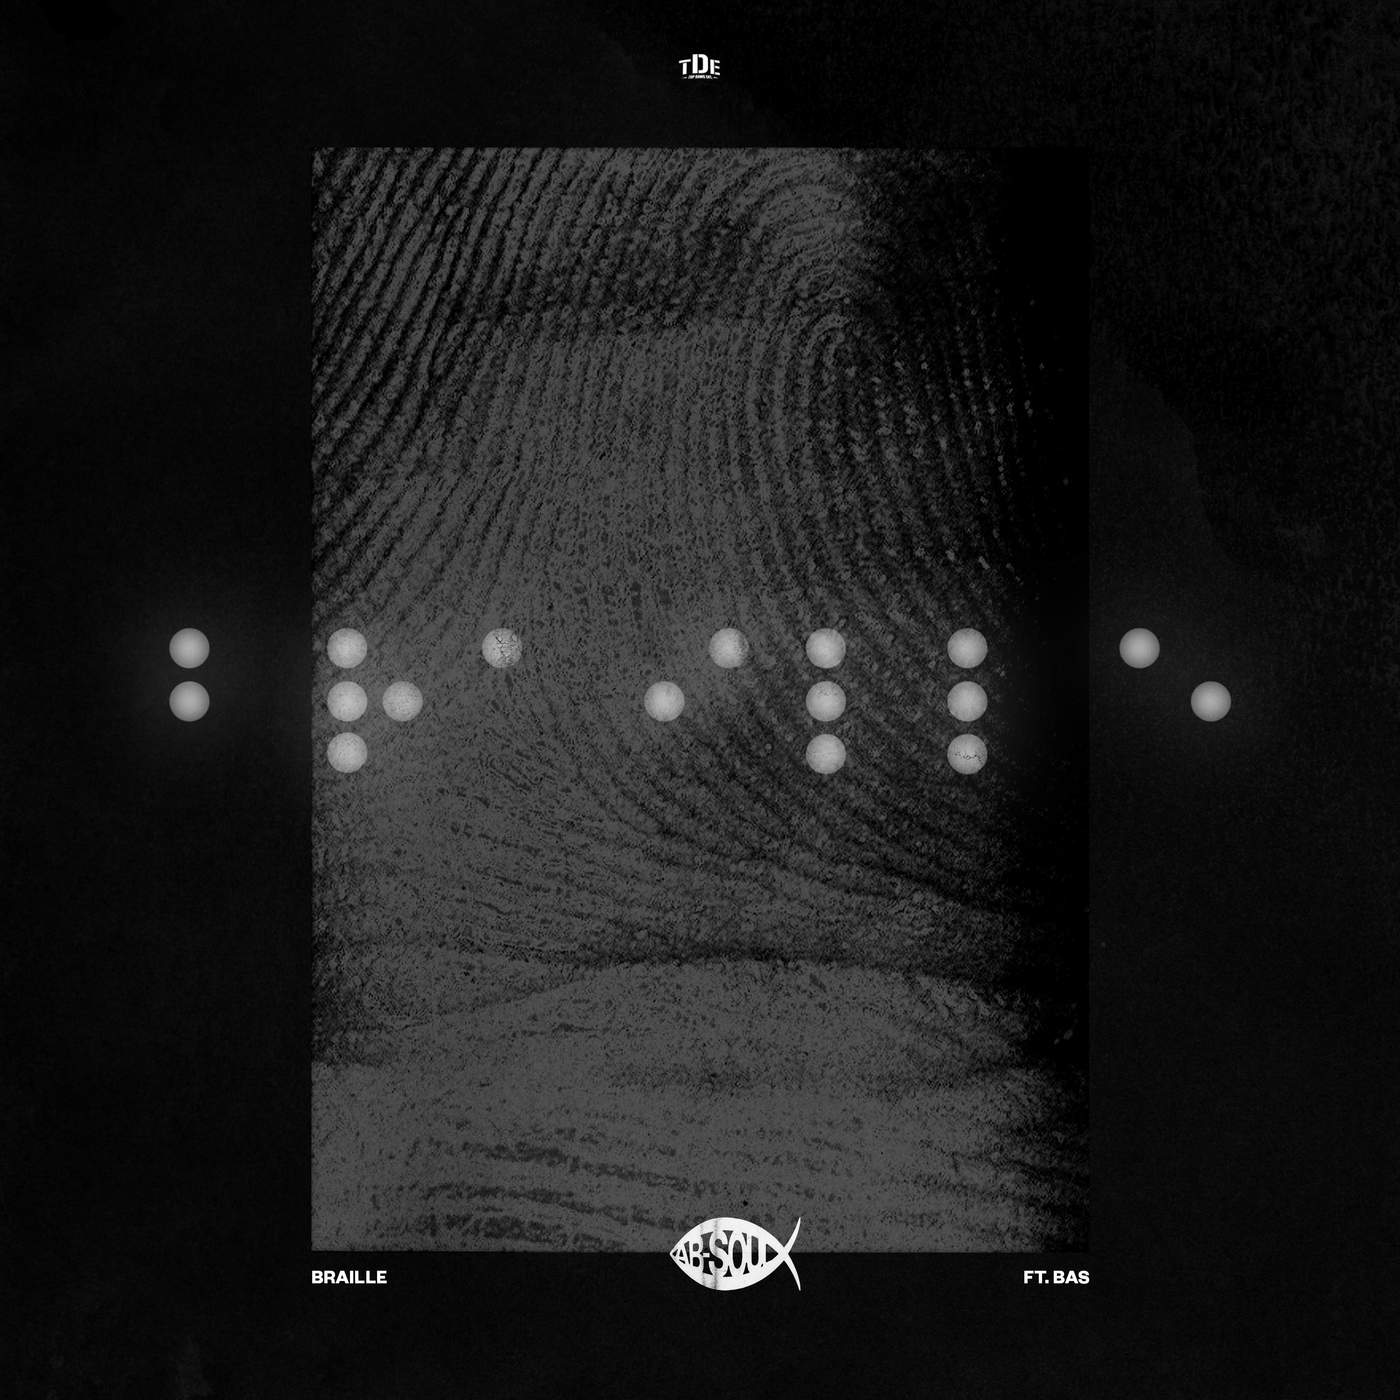 Ab-Soul - Braille (feat. Bas) - Single Cover